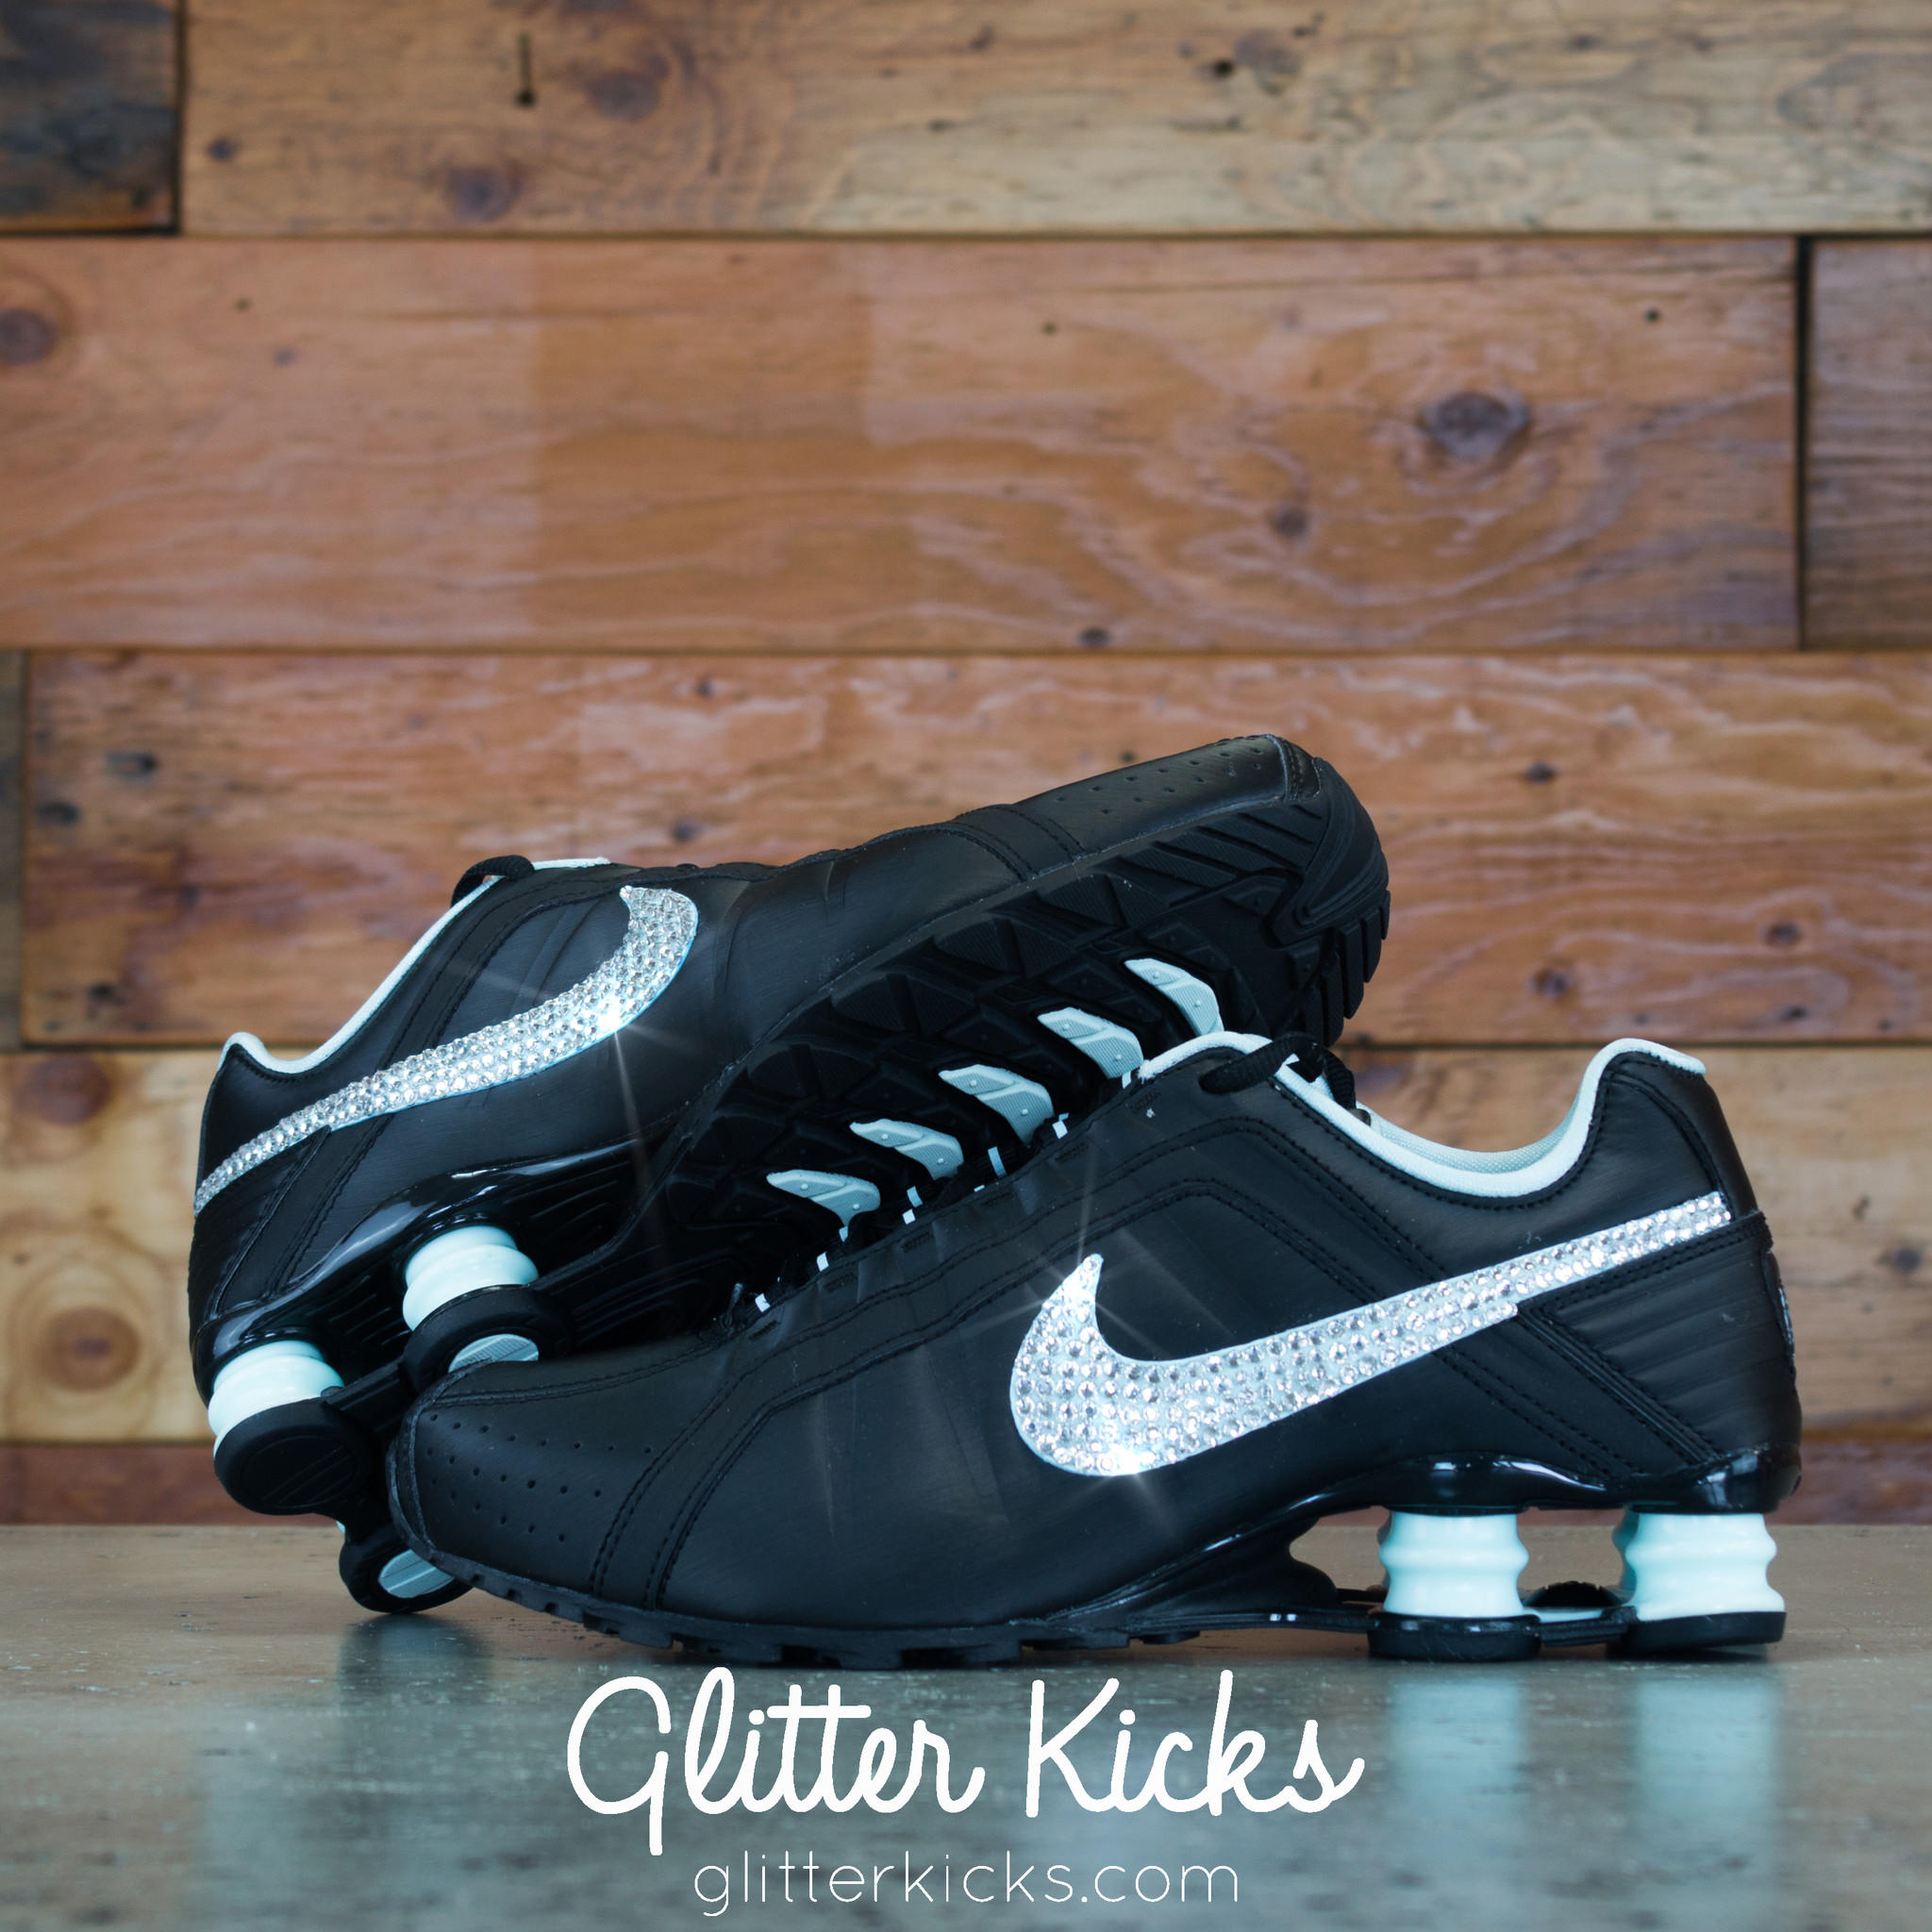 Nike Shox Current Glitter Kicks Running Shoes Black Tiffany 574126977522